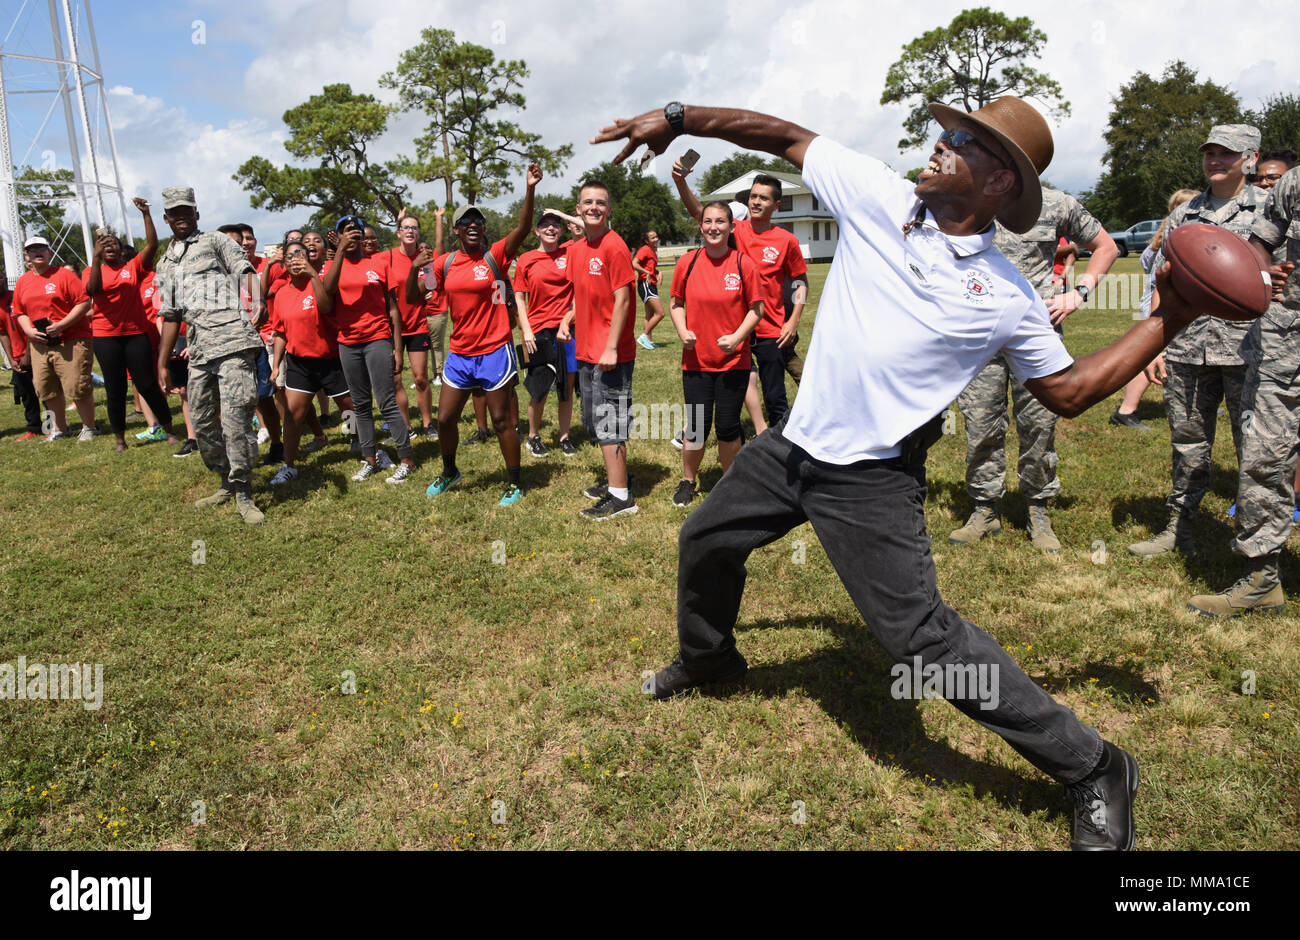 Retired Master Sgt Steve Hinton Biloxi High School Instructor Competes In The Football Throwing Competition At The Science Technology Engineering And Mathematics Diversity Outreach Day Sept 15 2017 On Keesler Air Force